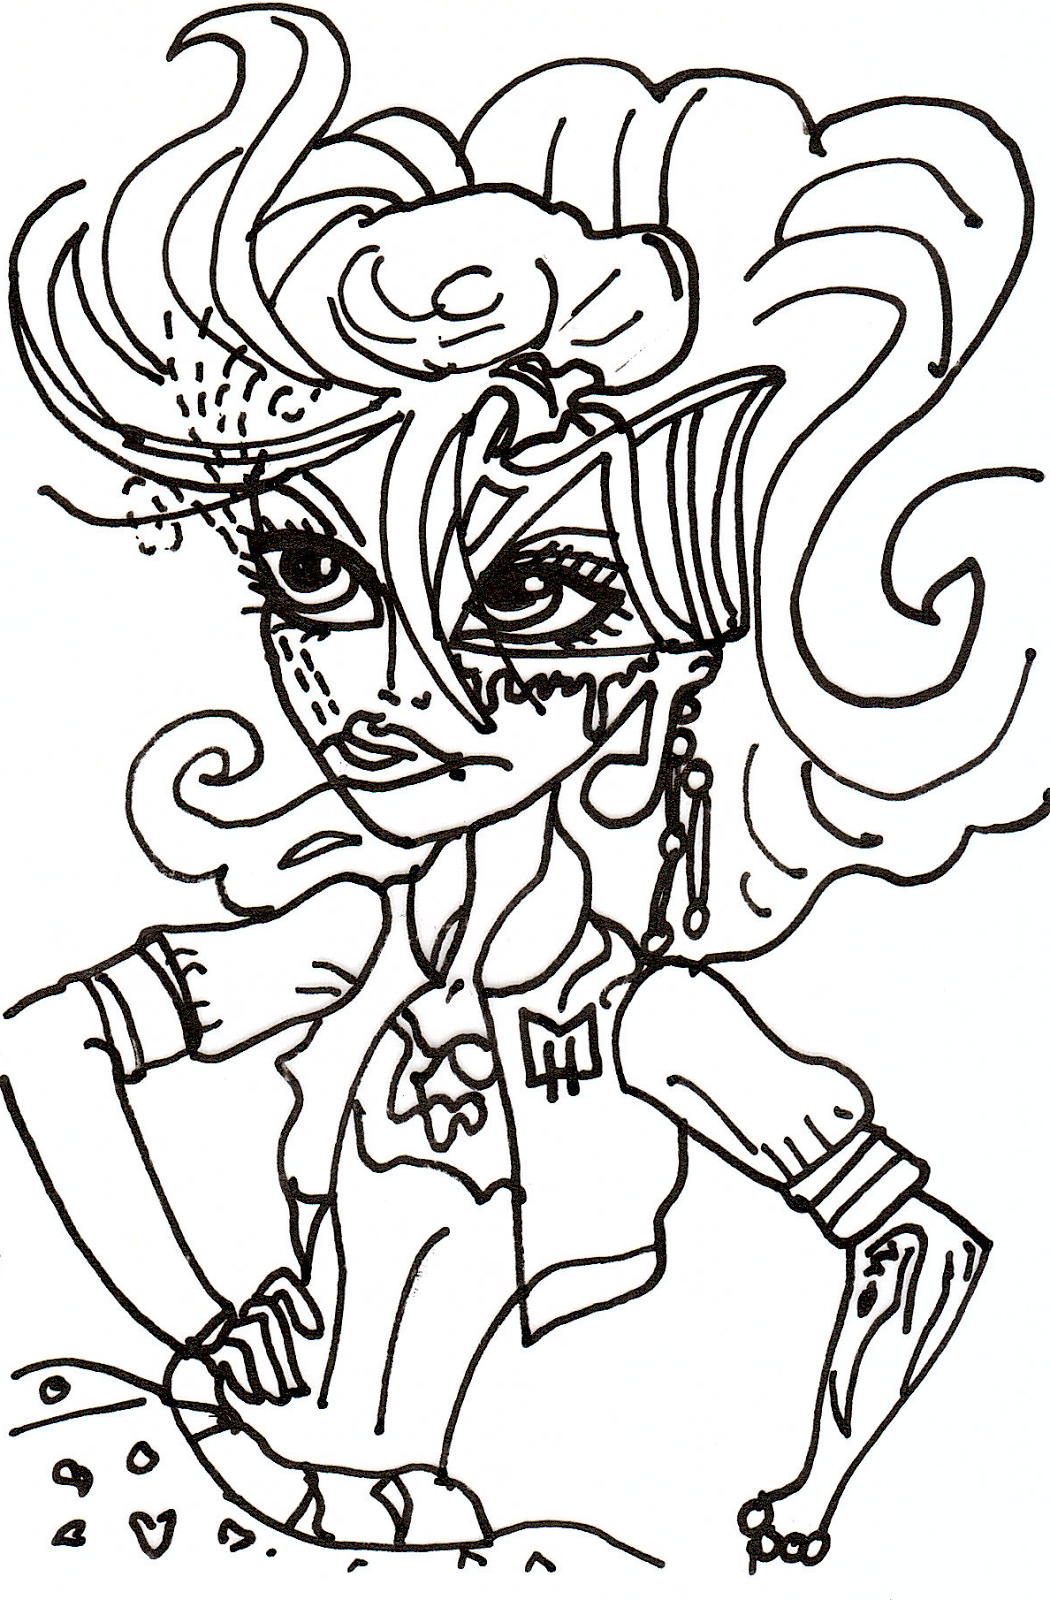 Free printable monster high coloring pages may 2013 for Monster high free coloring pages